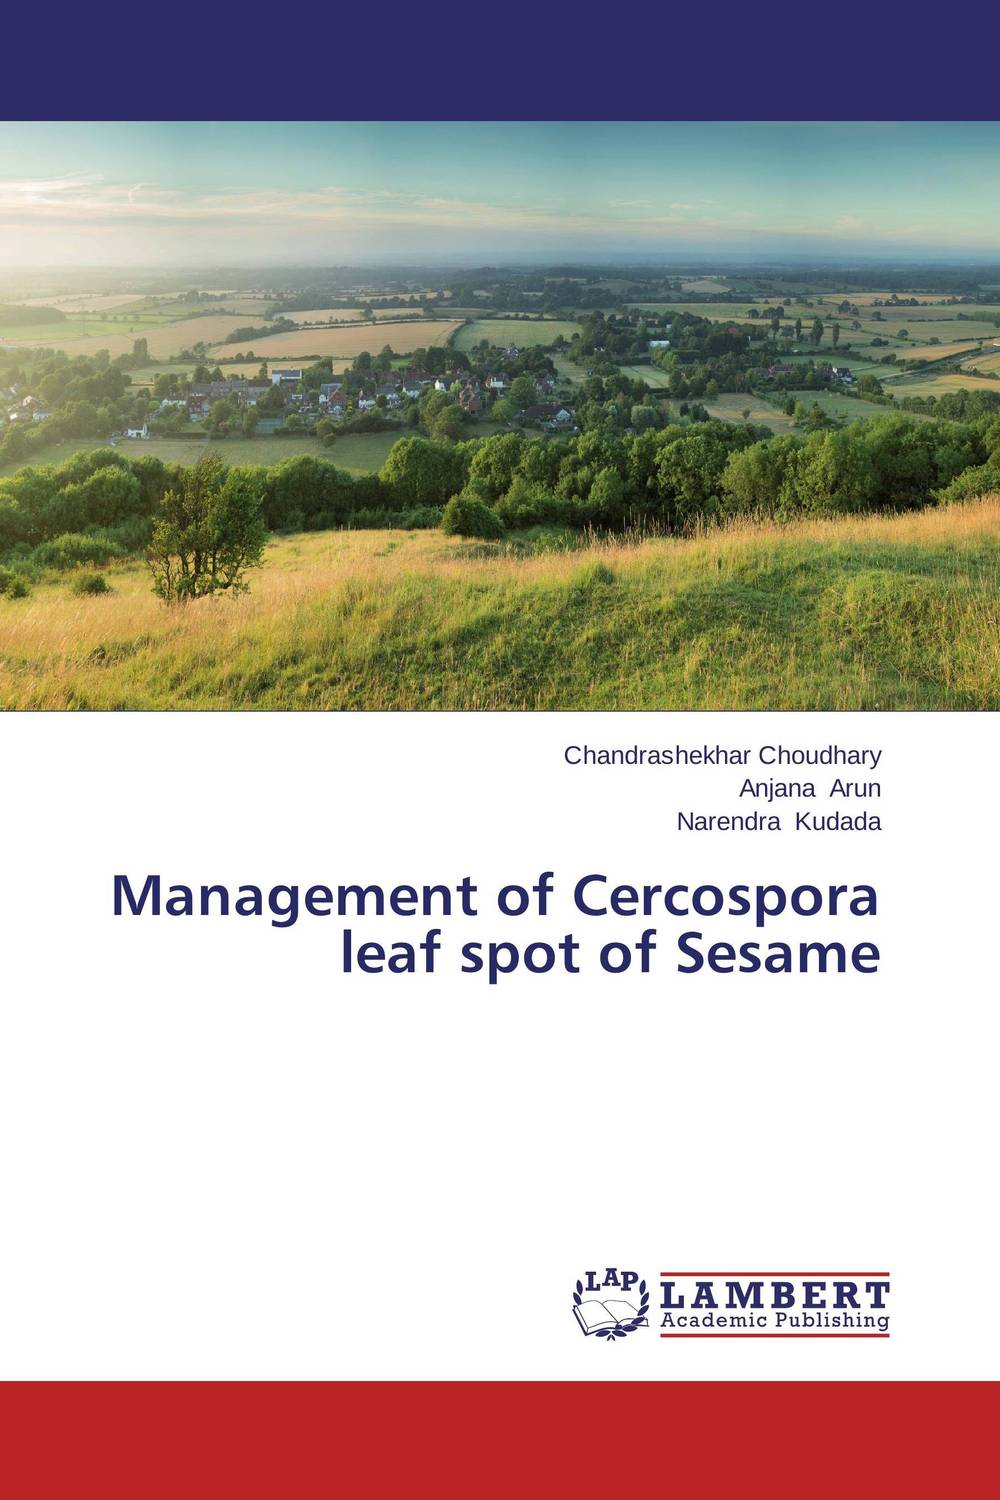 Management of Cercospora leaf spot of Sesame a decision support tool for library book inventory management